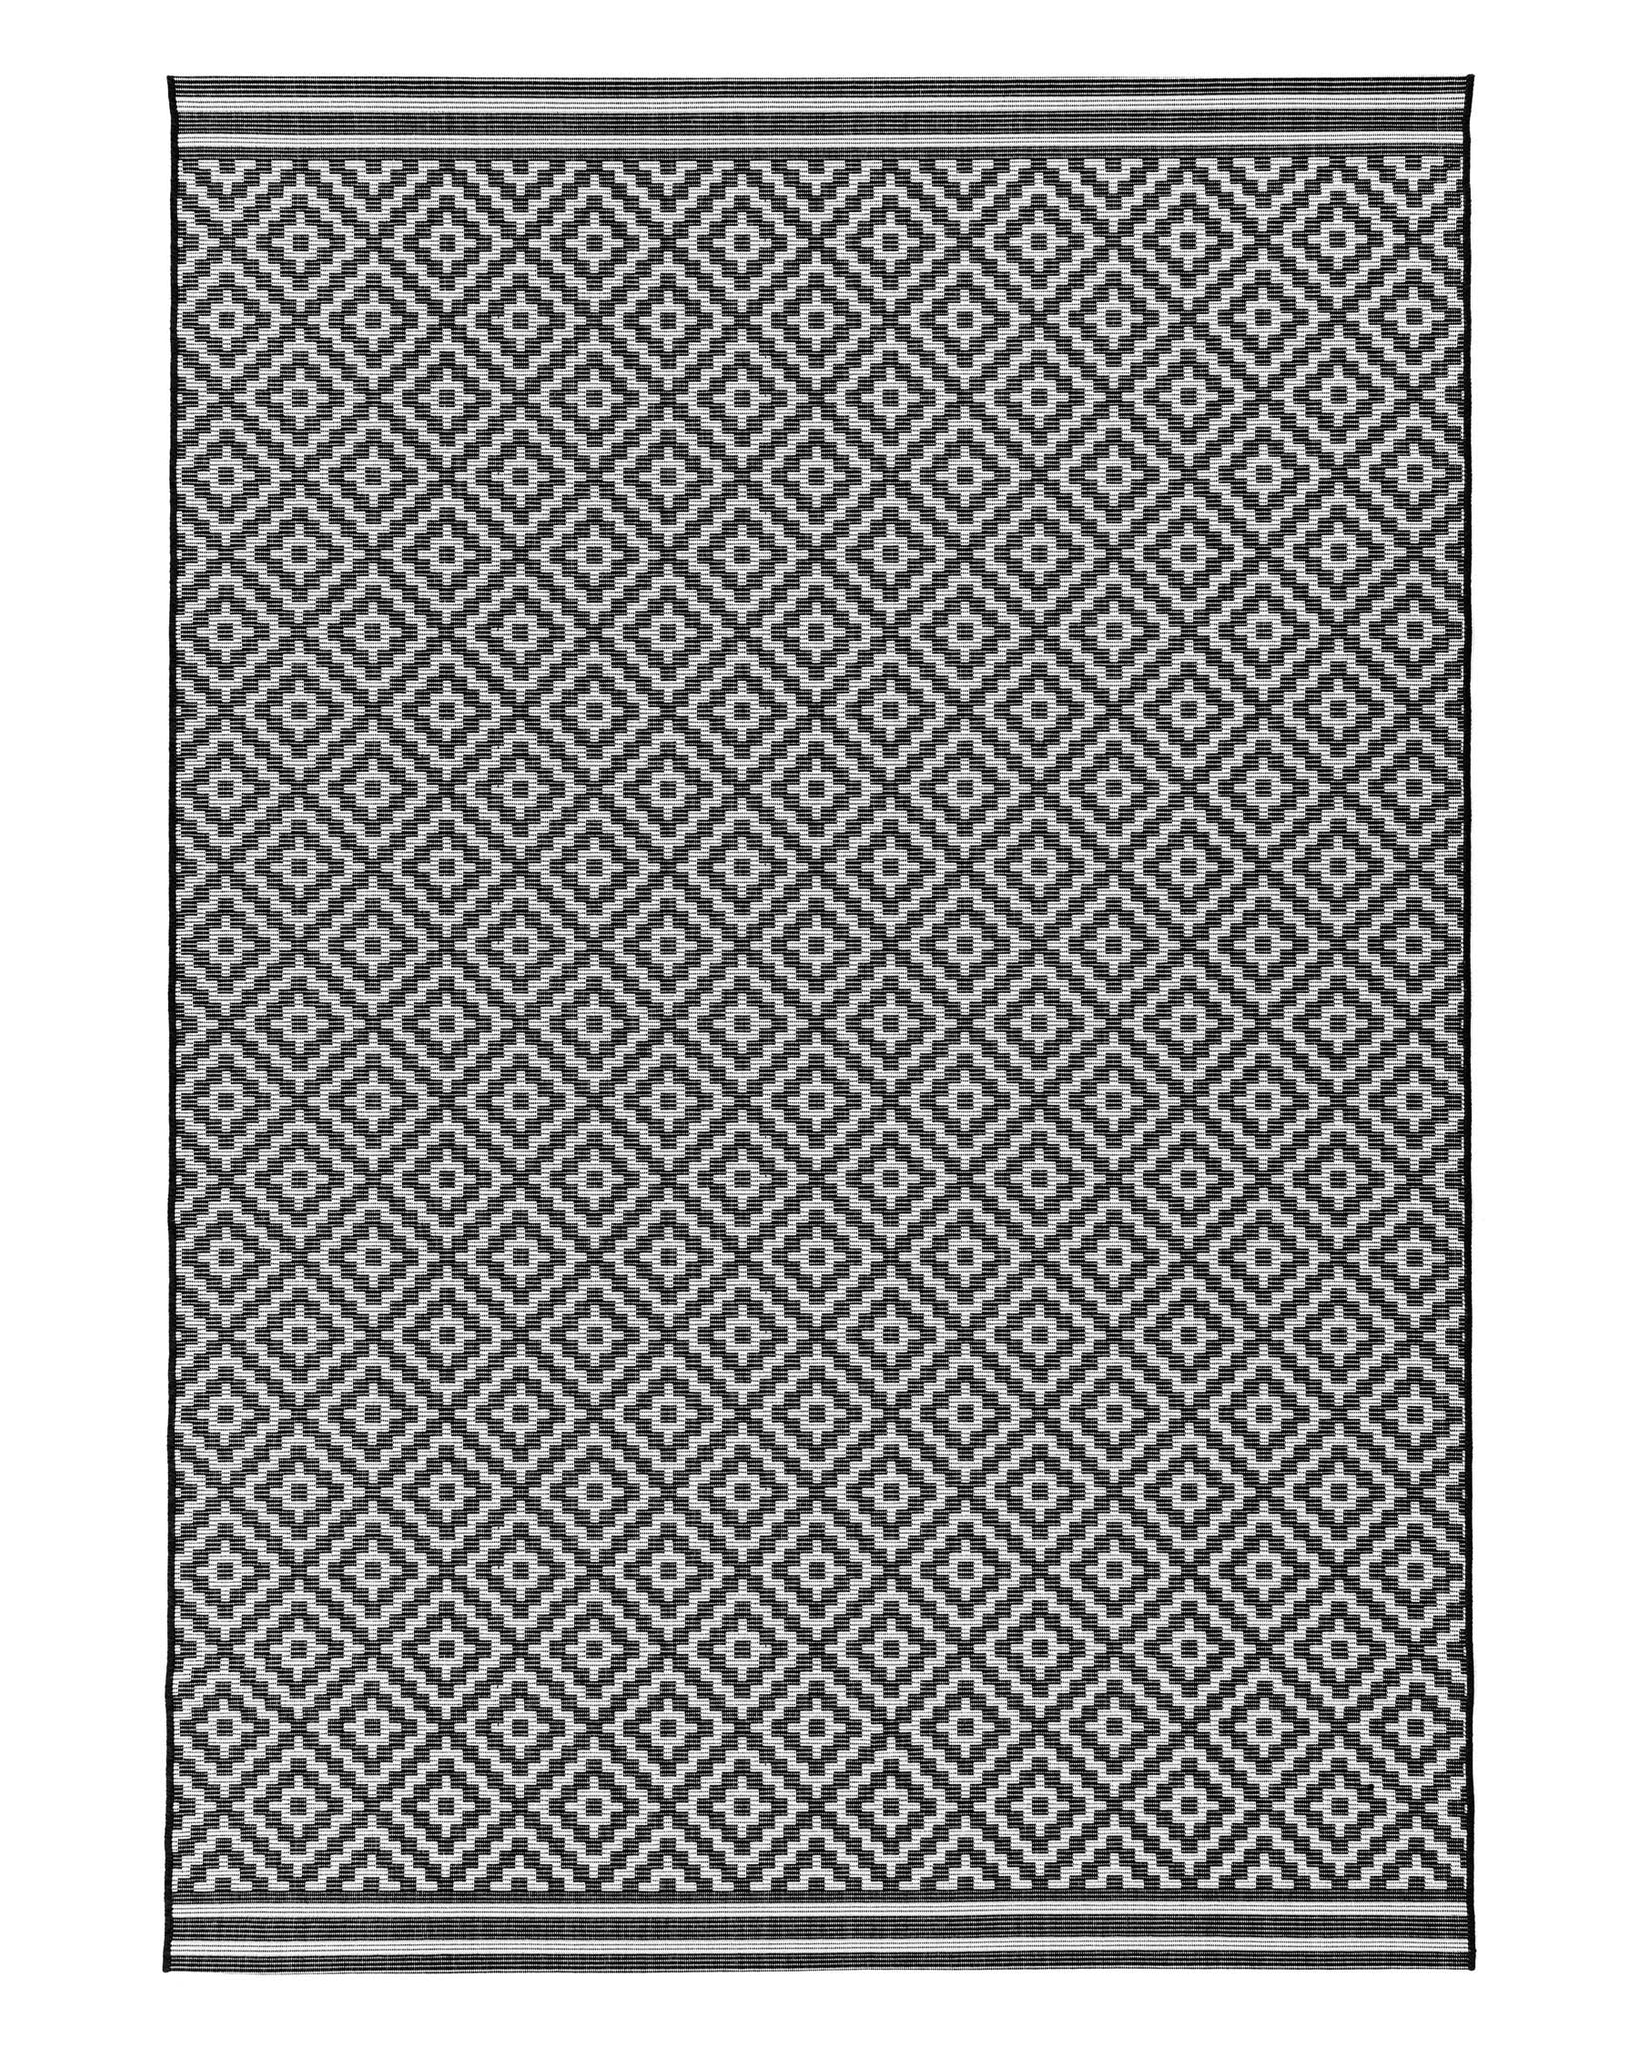 Diamond Black And White Terrazza Small Garden Rug